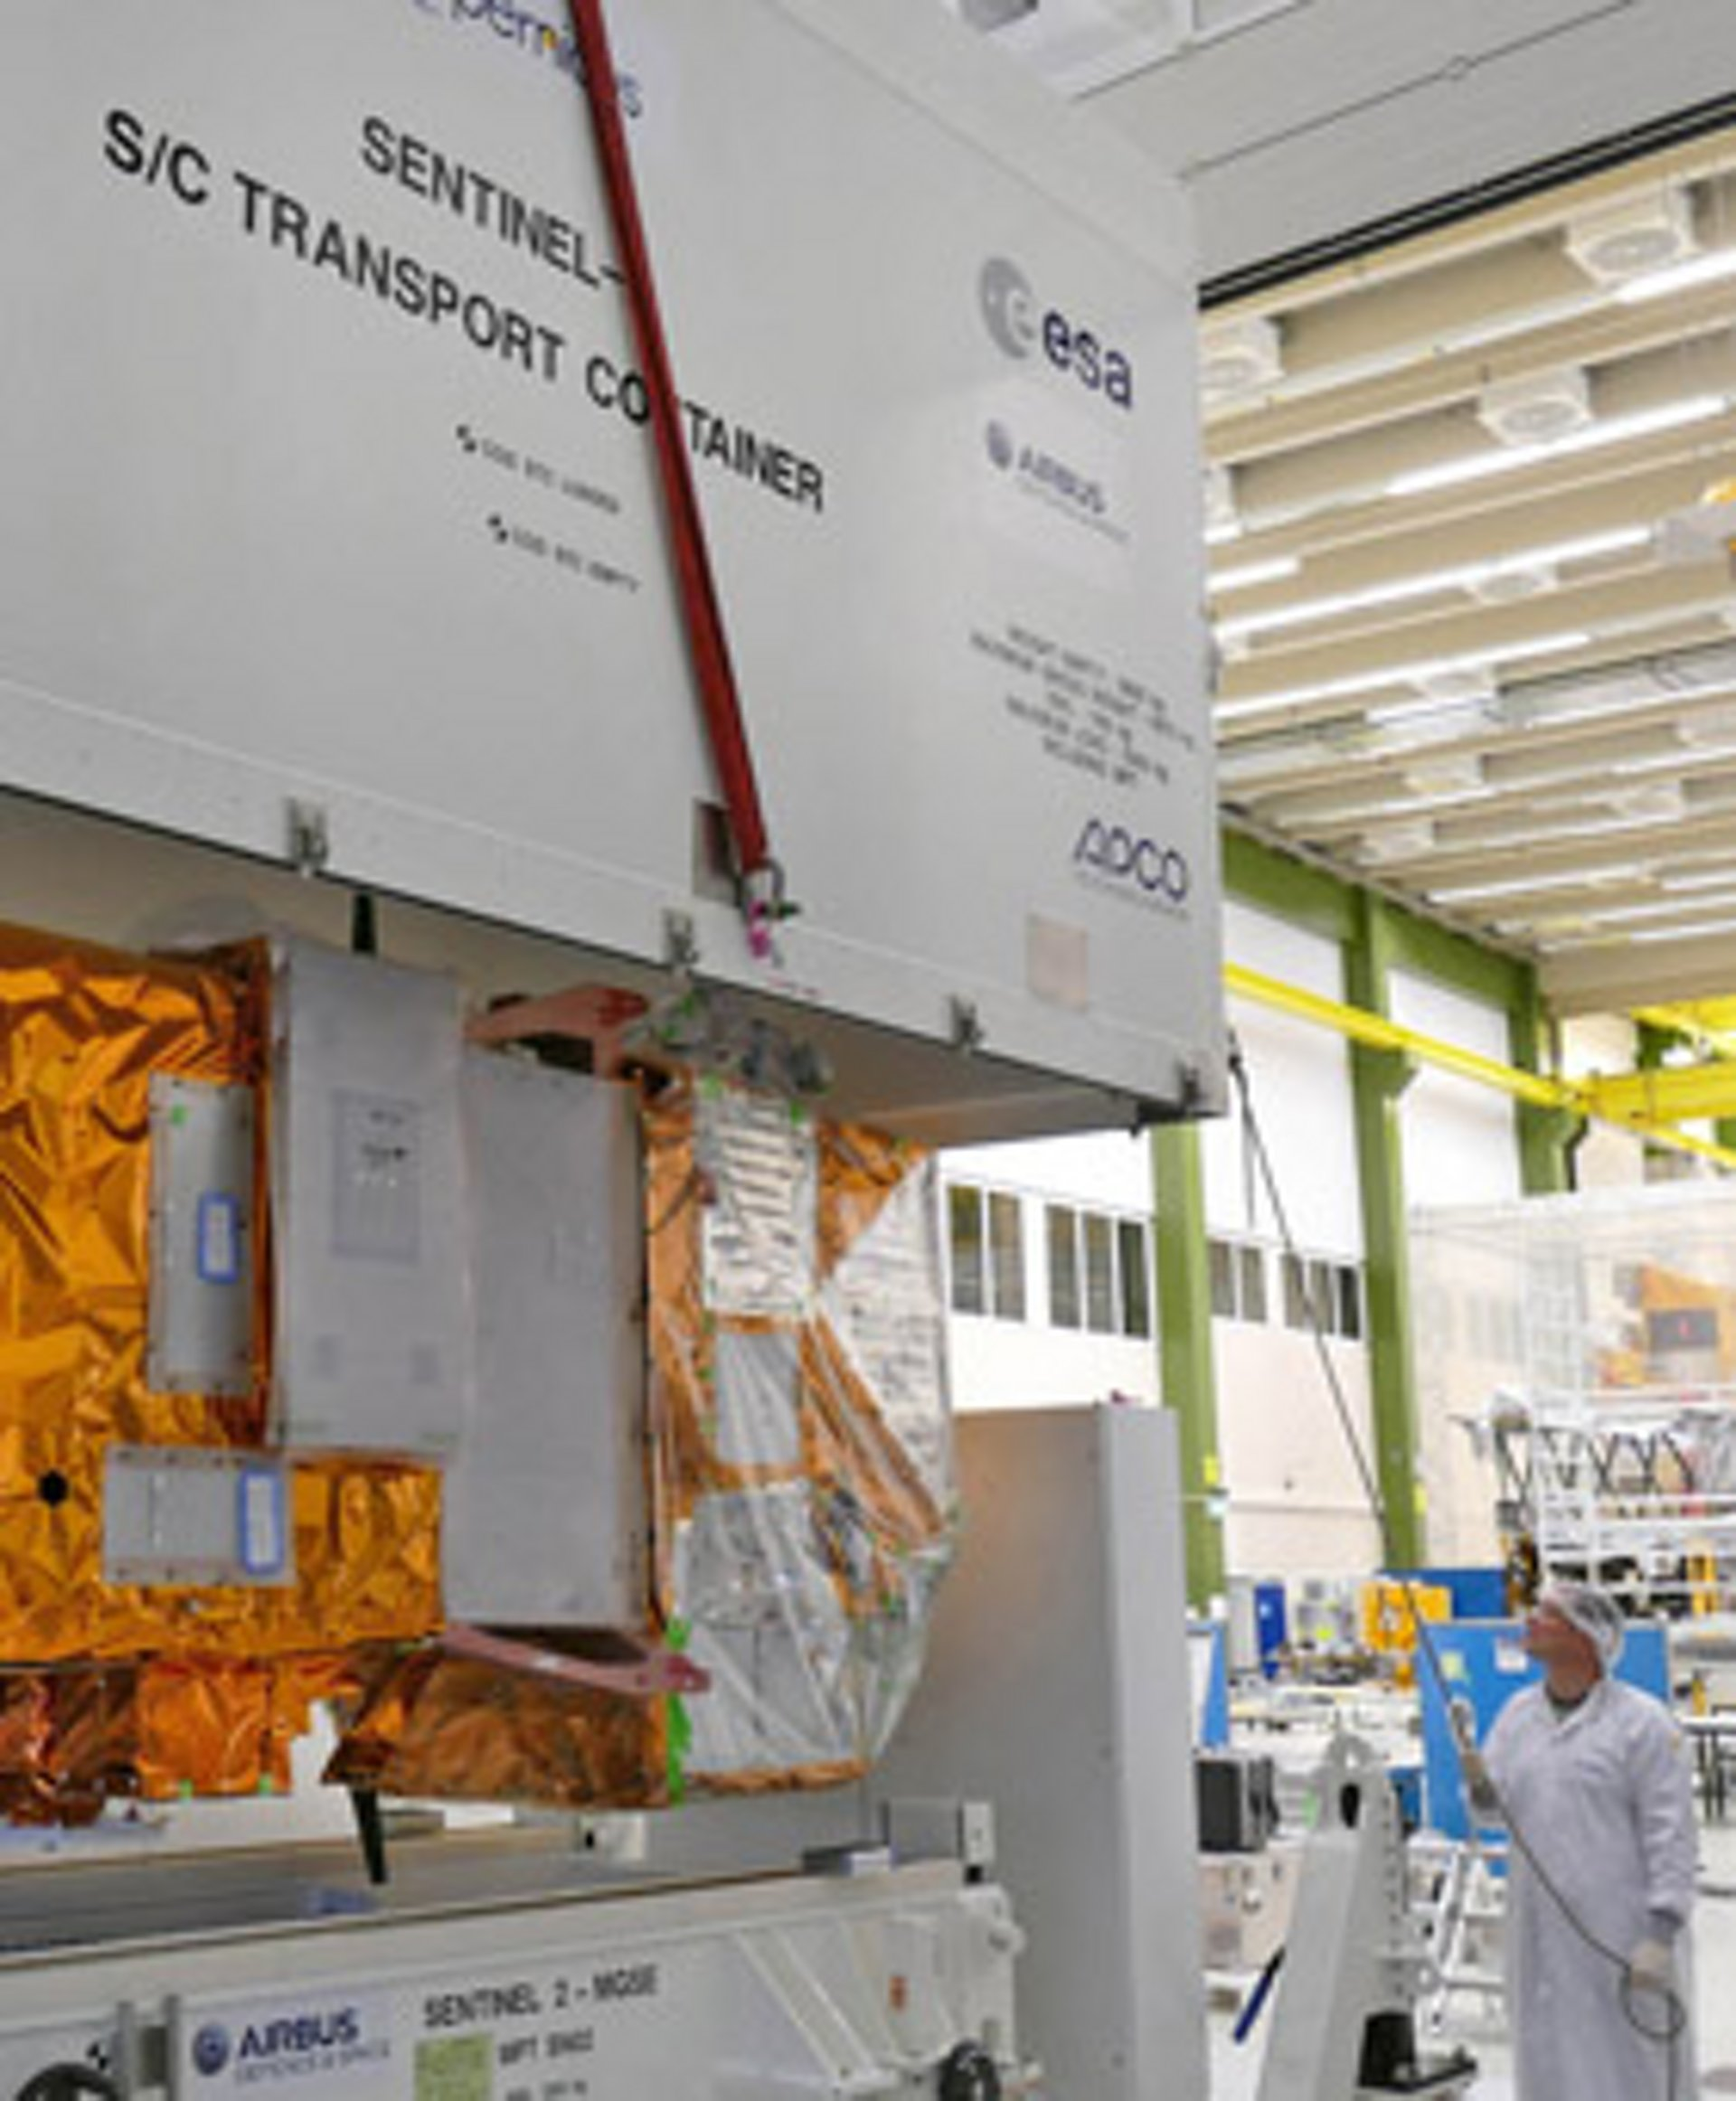 Sentinel-2B- Closing of Container